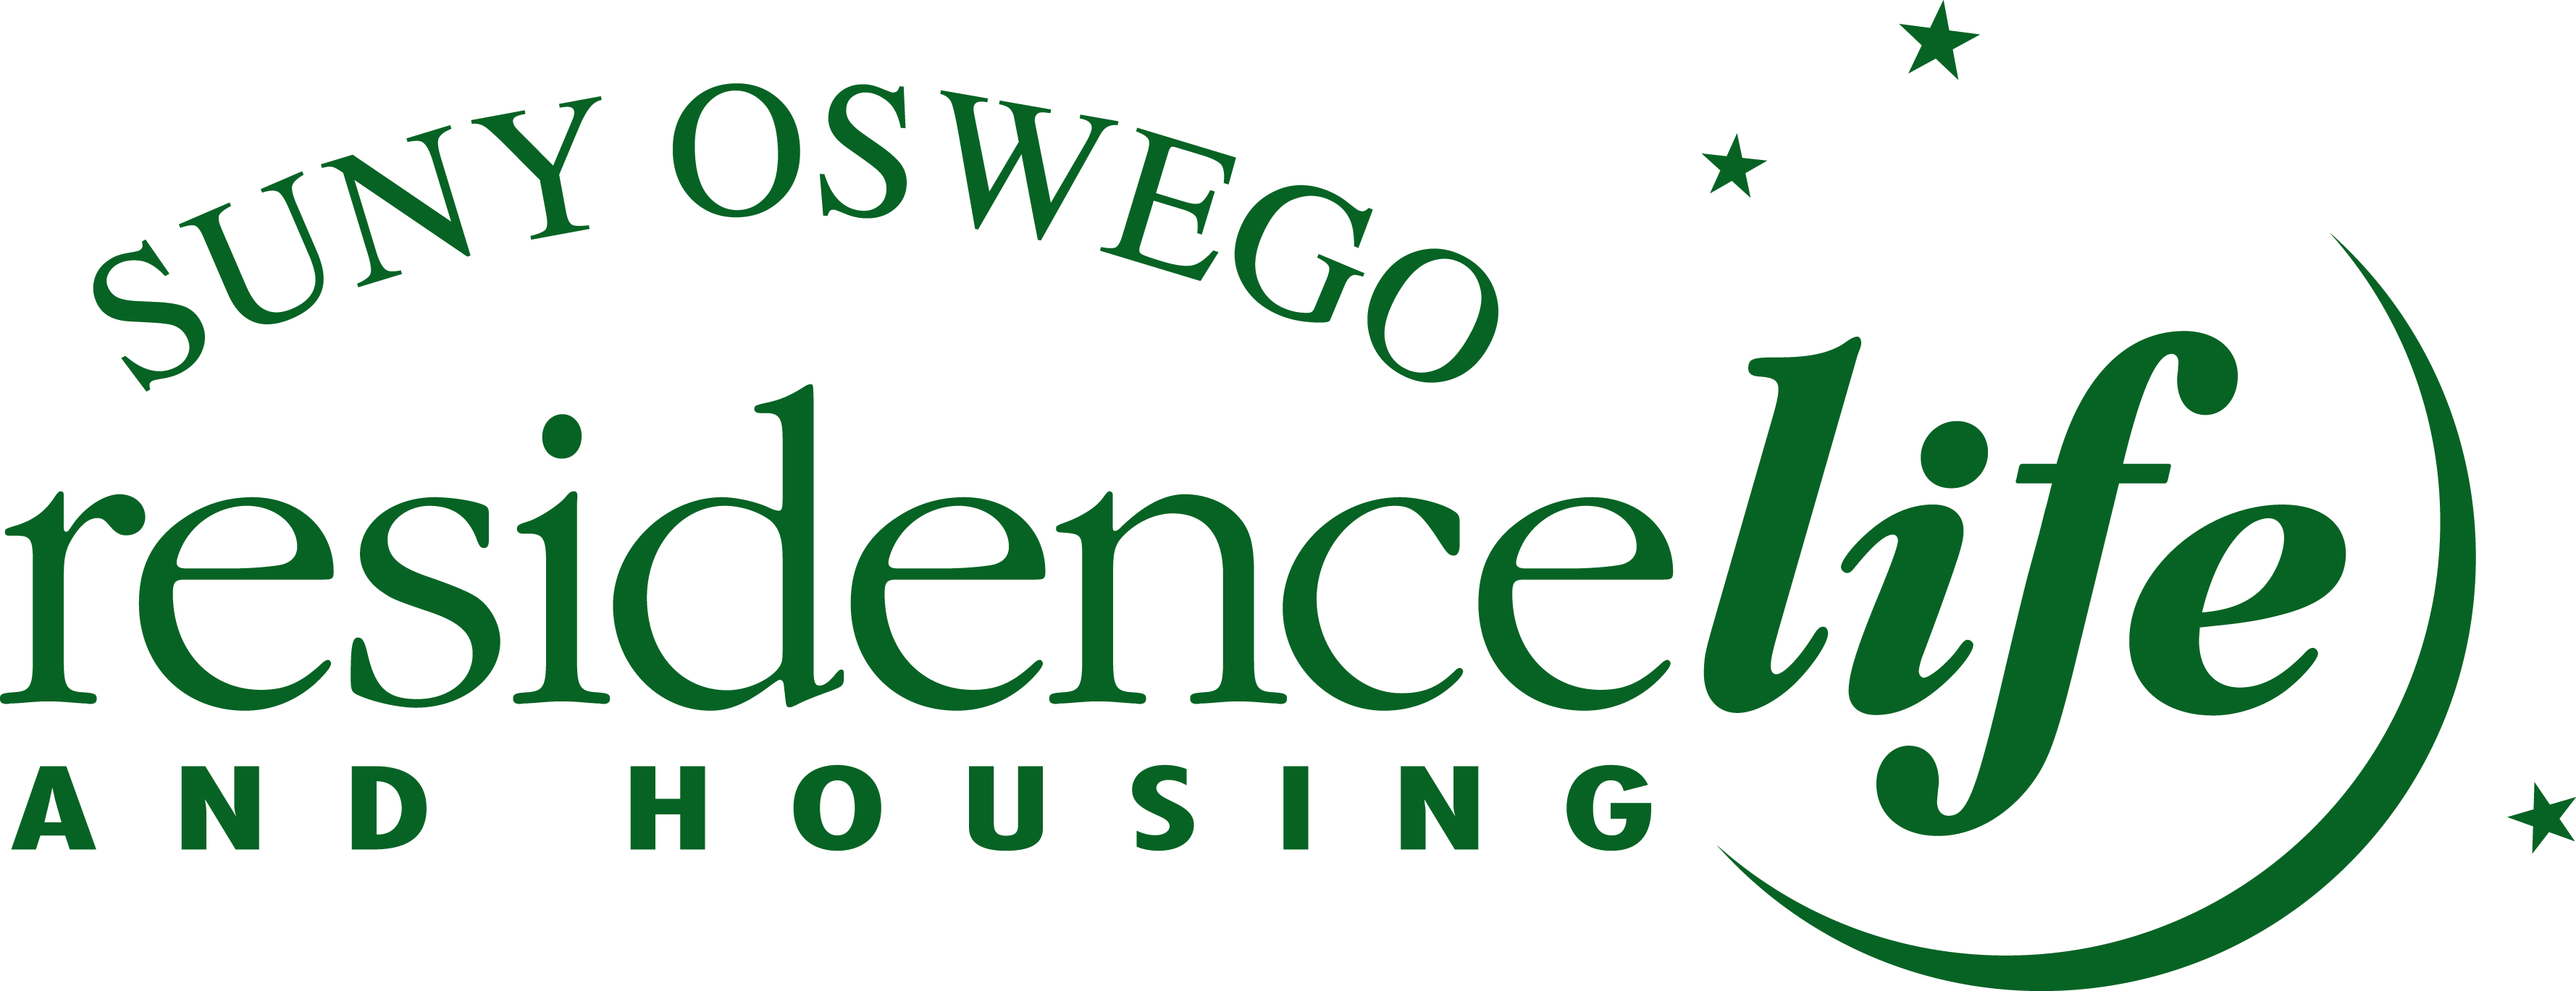 SUNY Oswego Residence Life and Housing logo